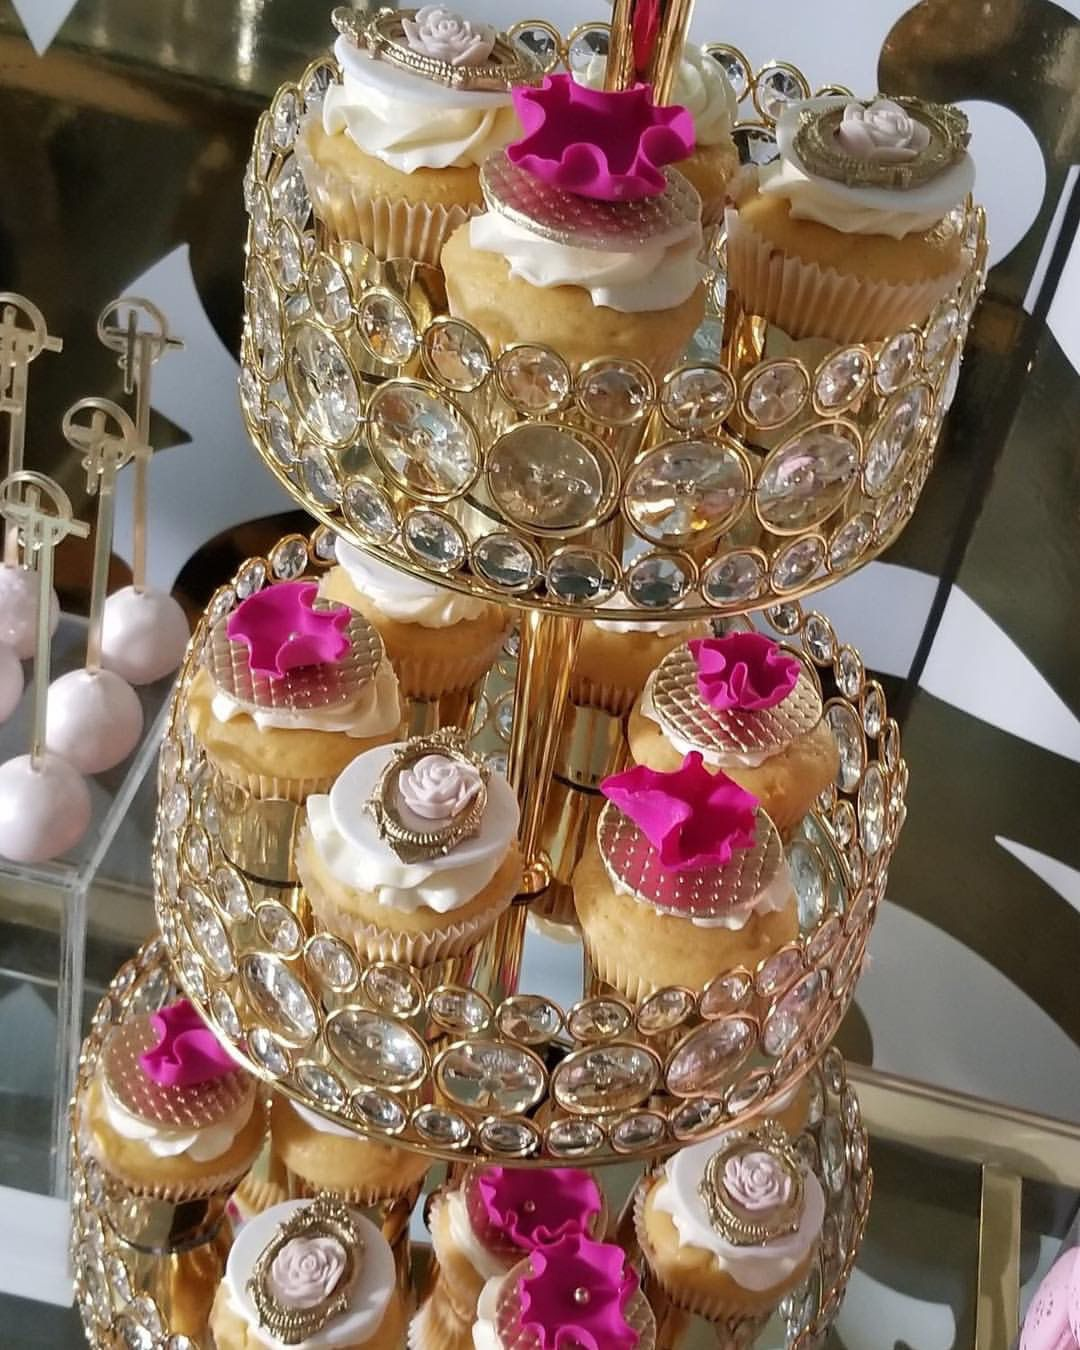 Bling 3 Tier Serving Tray With Clear Glass Accents Available In Shiny Gold Or Shiny Silver 31 H Tiers 12 10 8 Opulent Treasures Wedding Cupcakes Bling Cakes